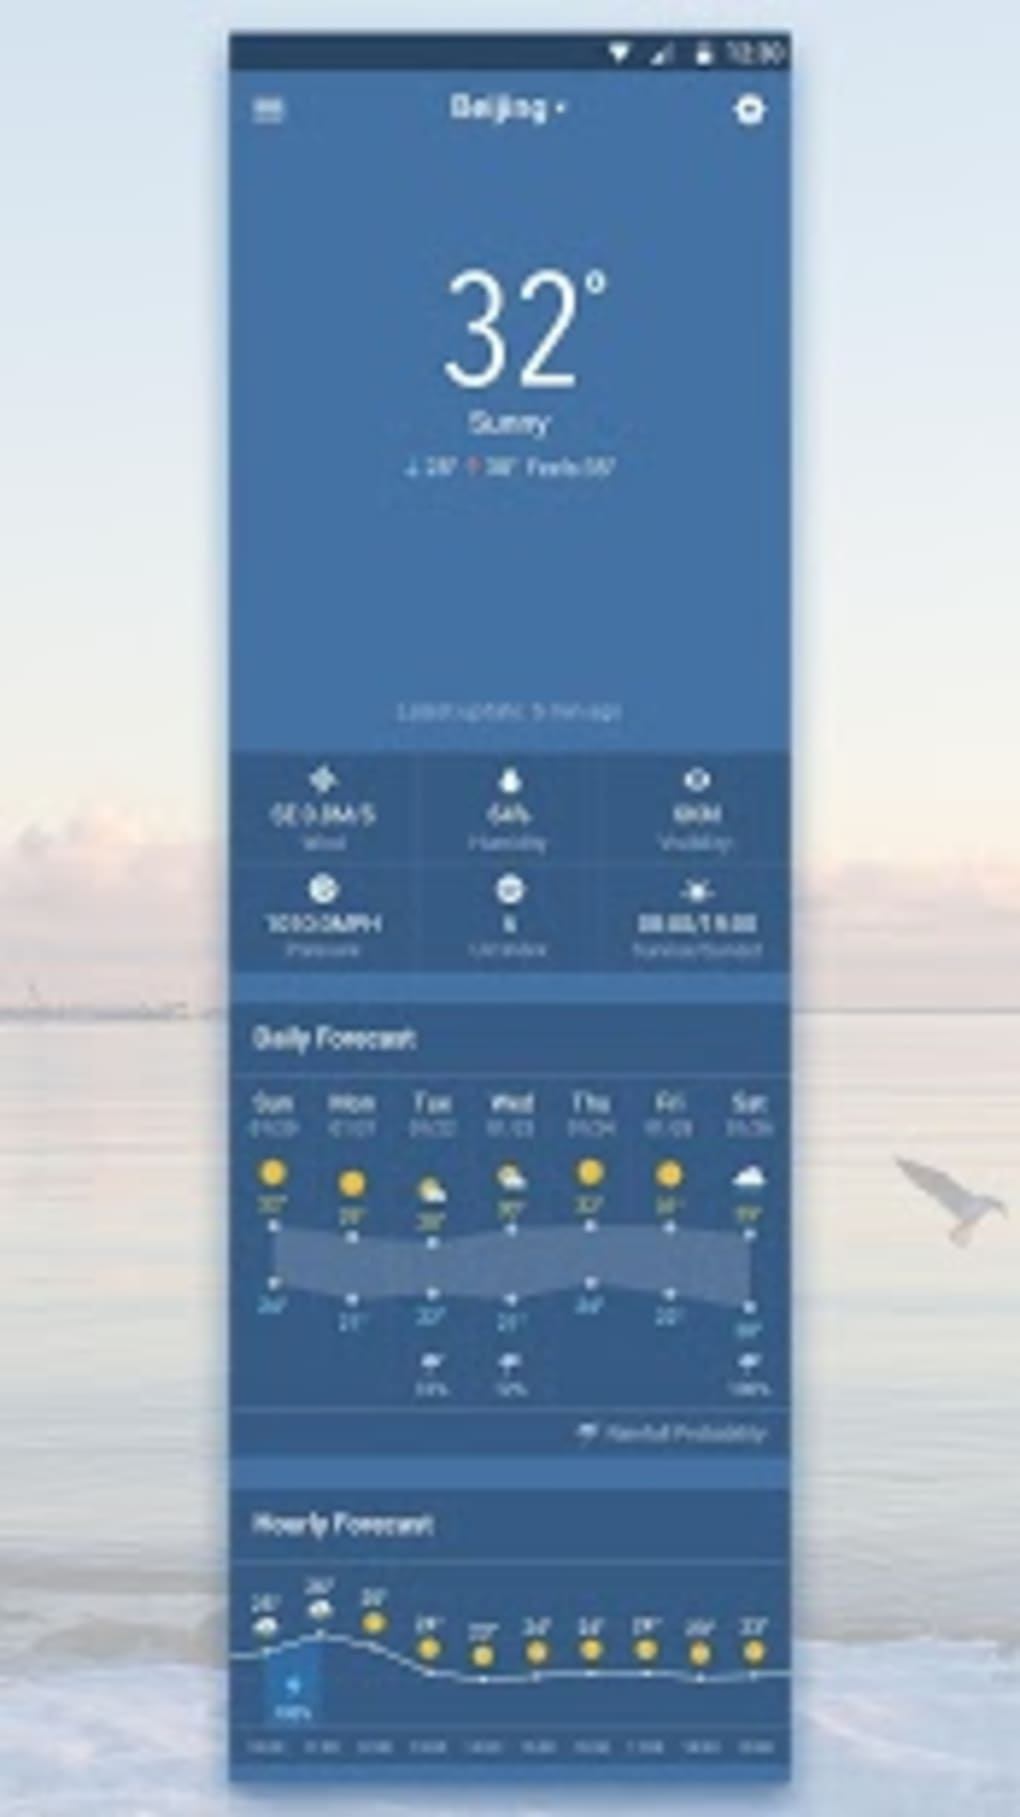 Clock & Weather Widget - Storm for Android - Download